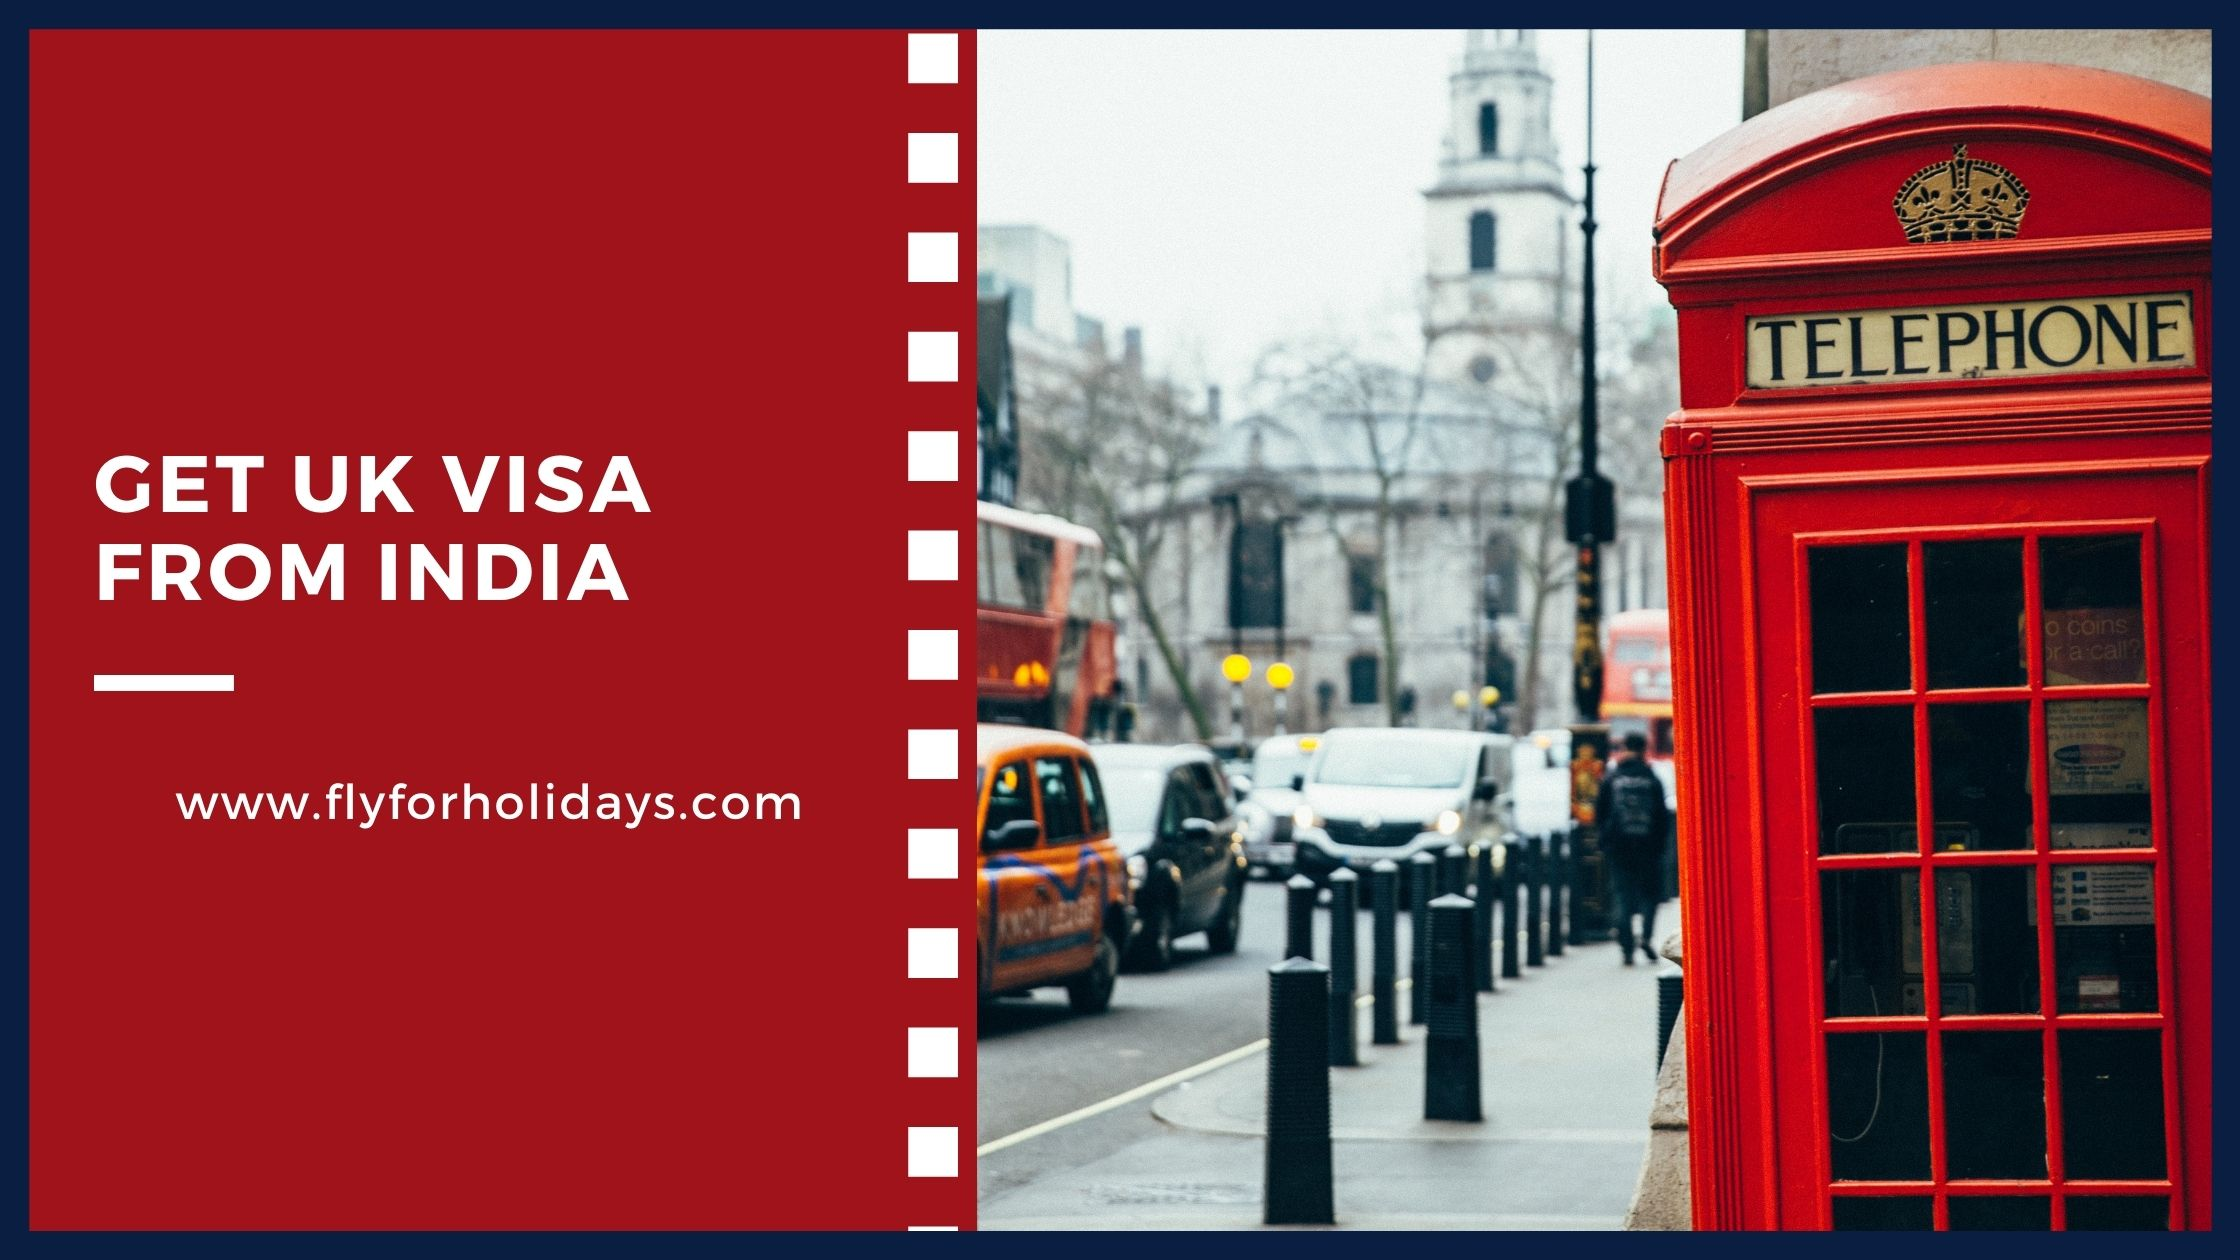 How to Get UK visa from India - Fly For Holidays